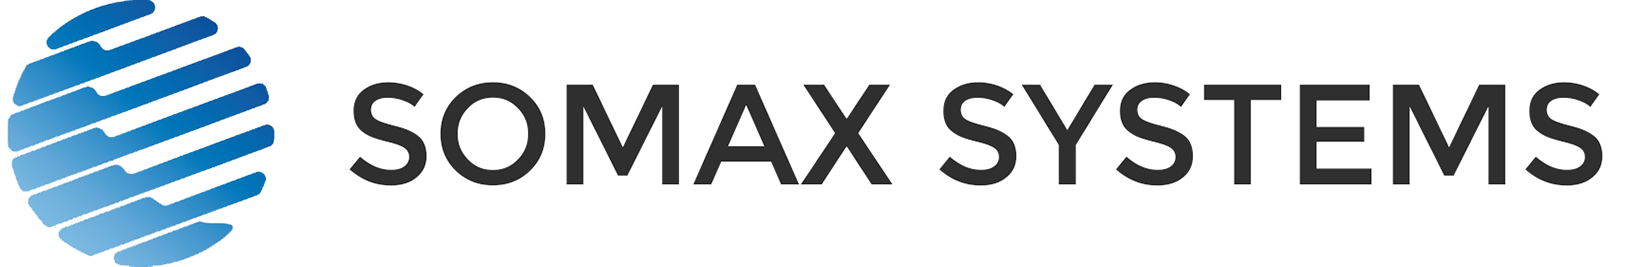 Somax Systems